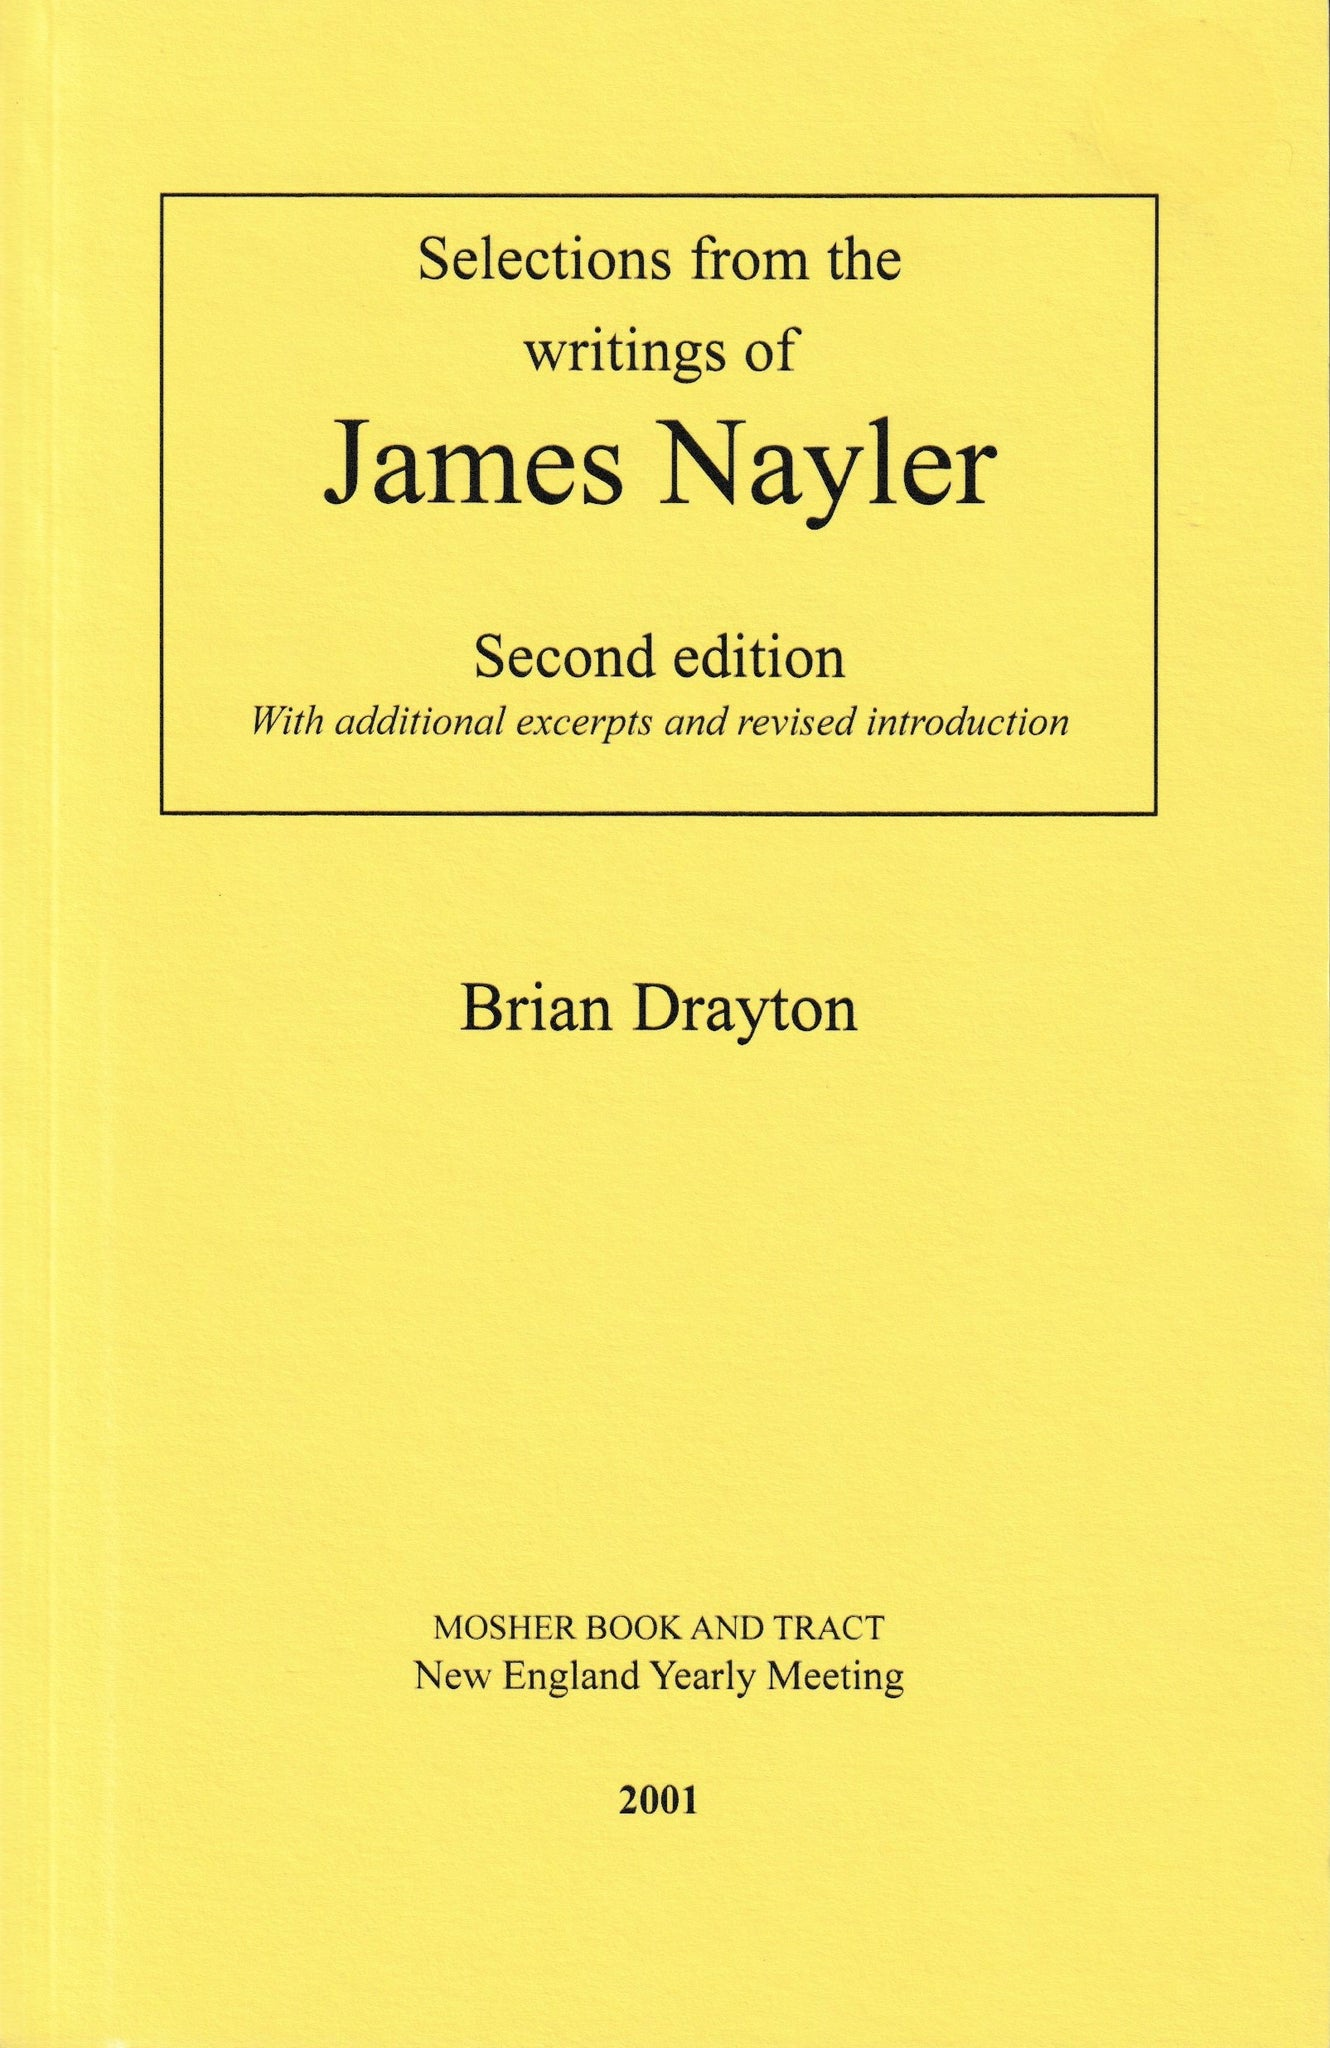 James Nayler: Selected Writings